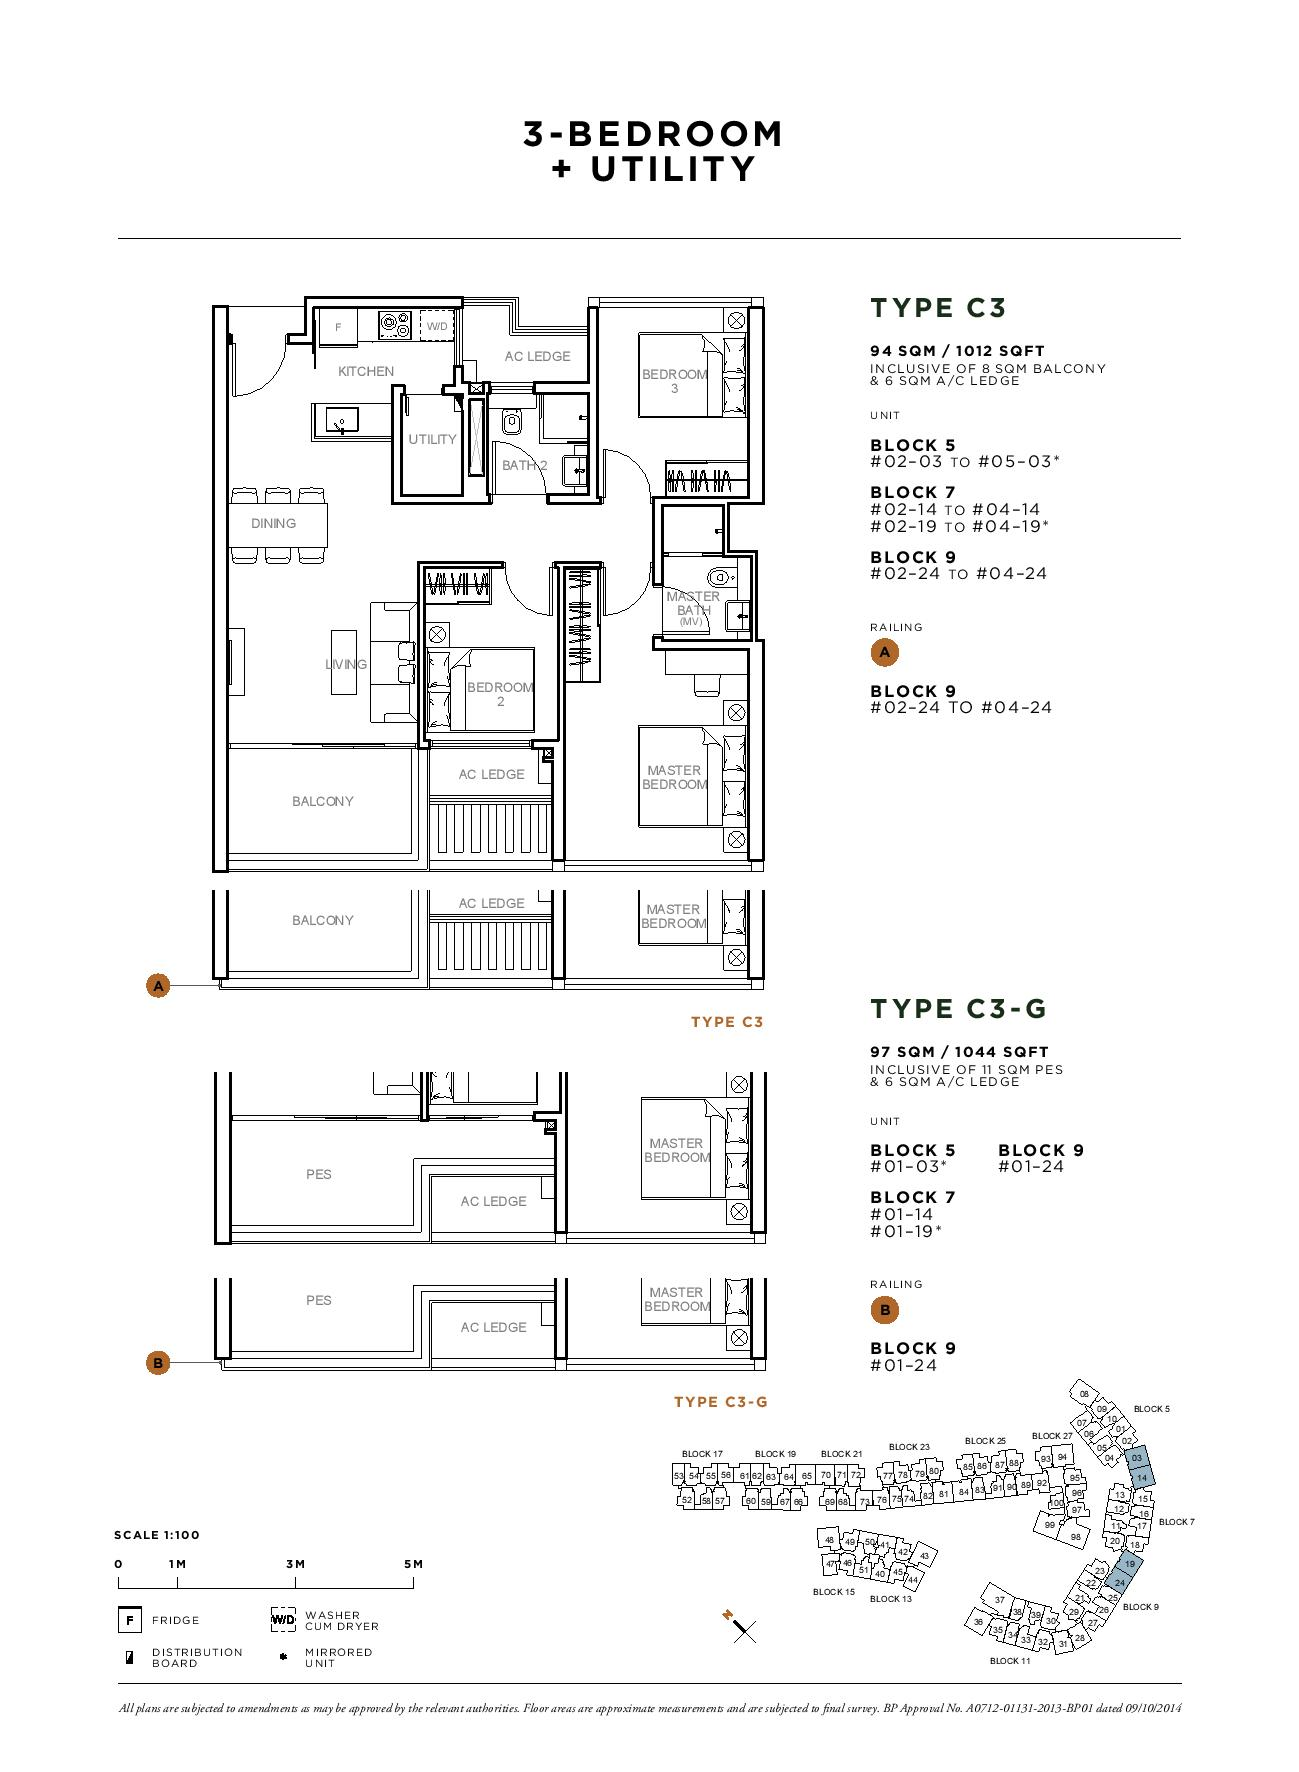 Sophia Hills 3 Bedroom + Utility Type C3 Floor Plans